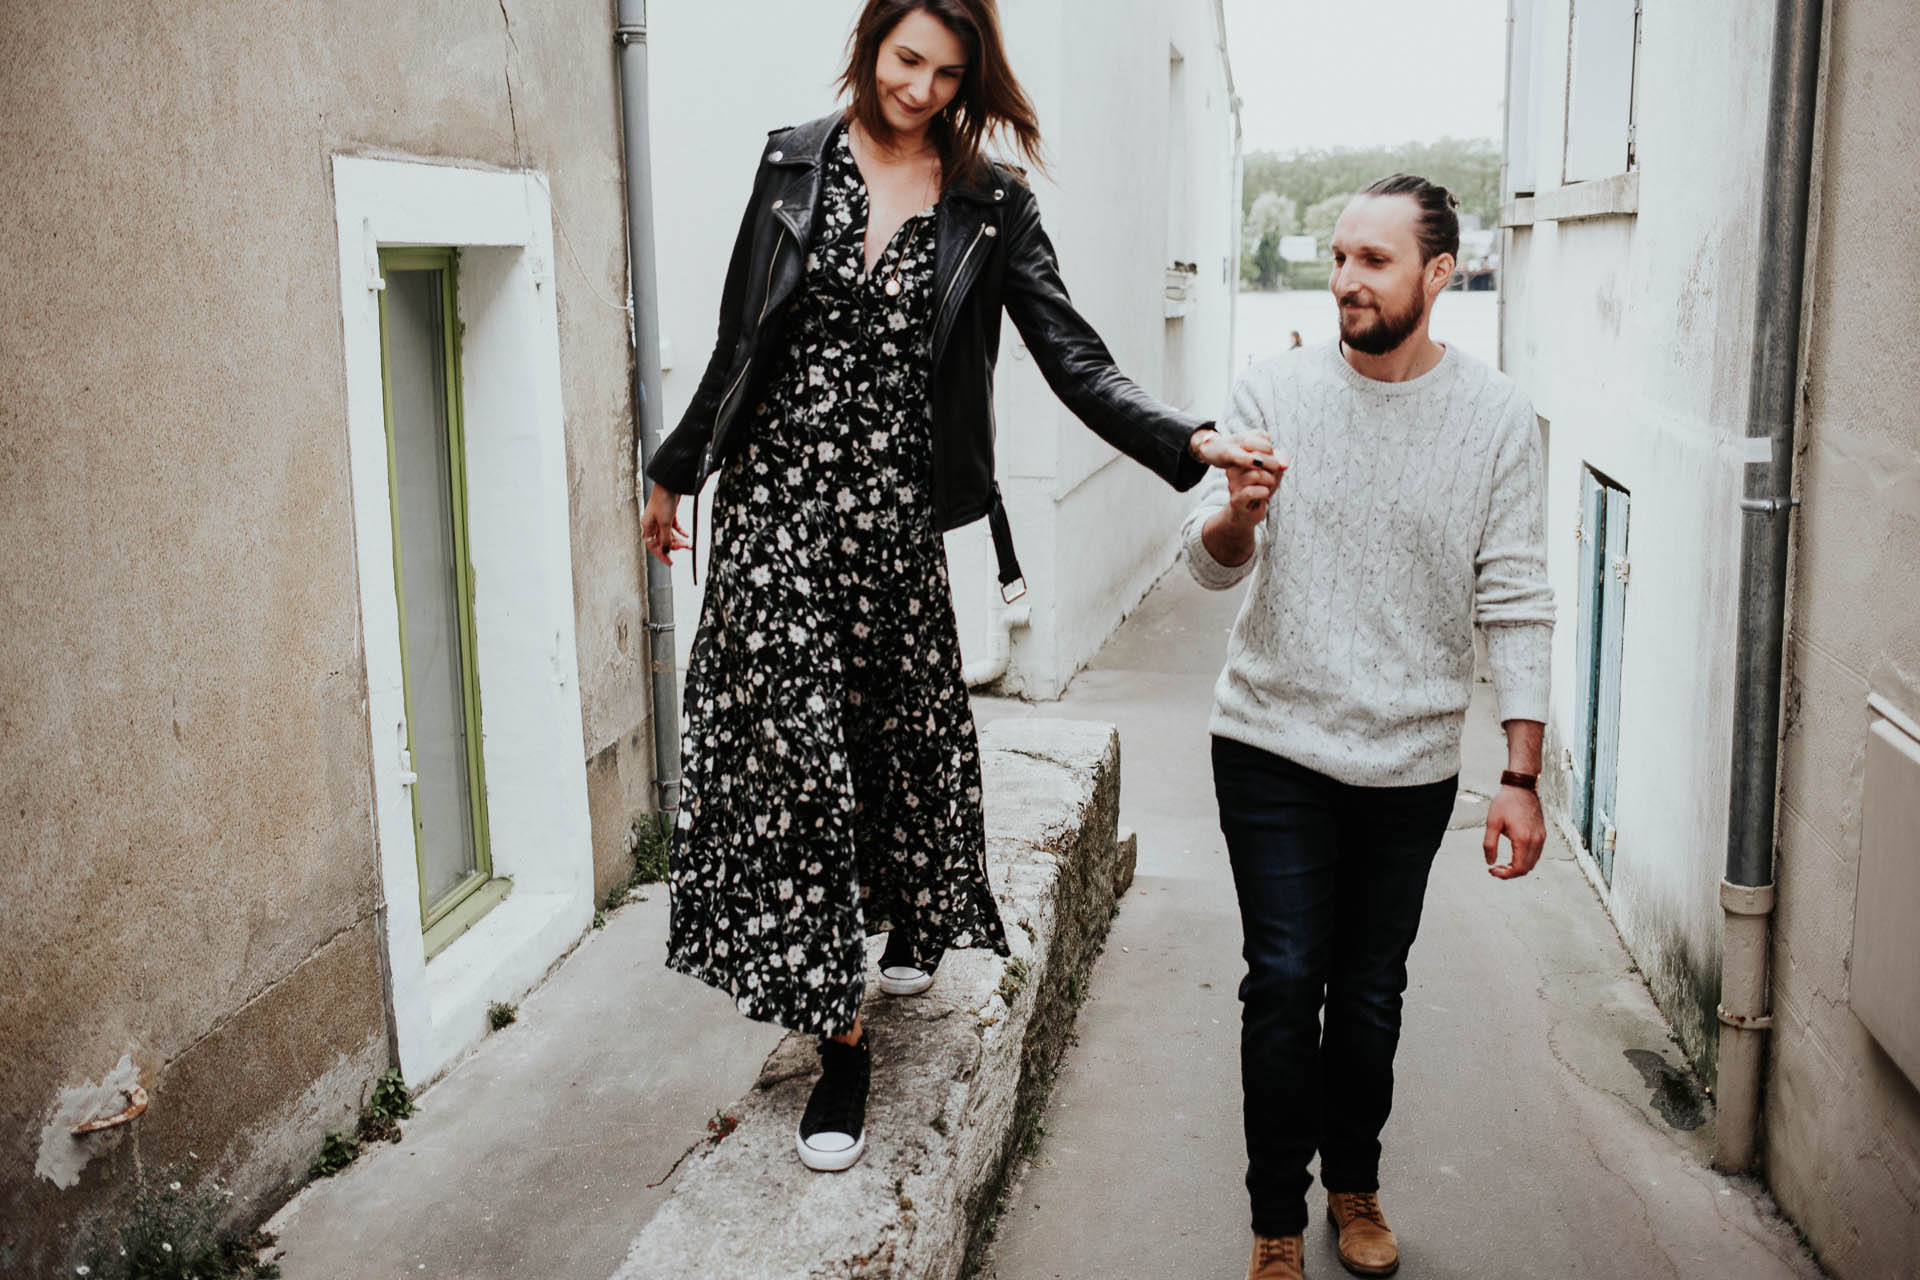 engagement_session_trentemoult_flavie_nelly_photographe_nantes-17